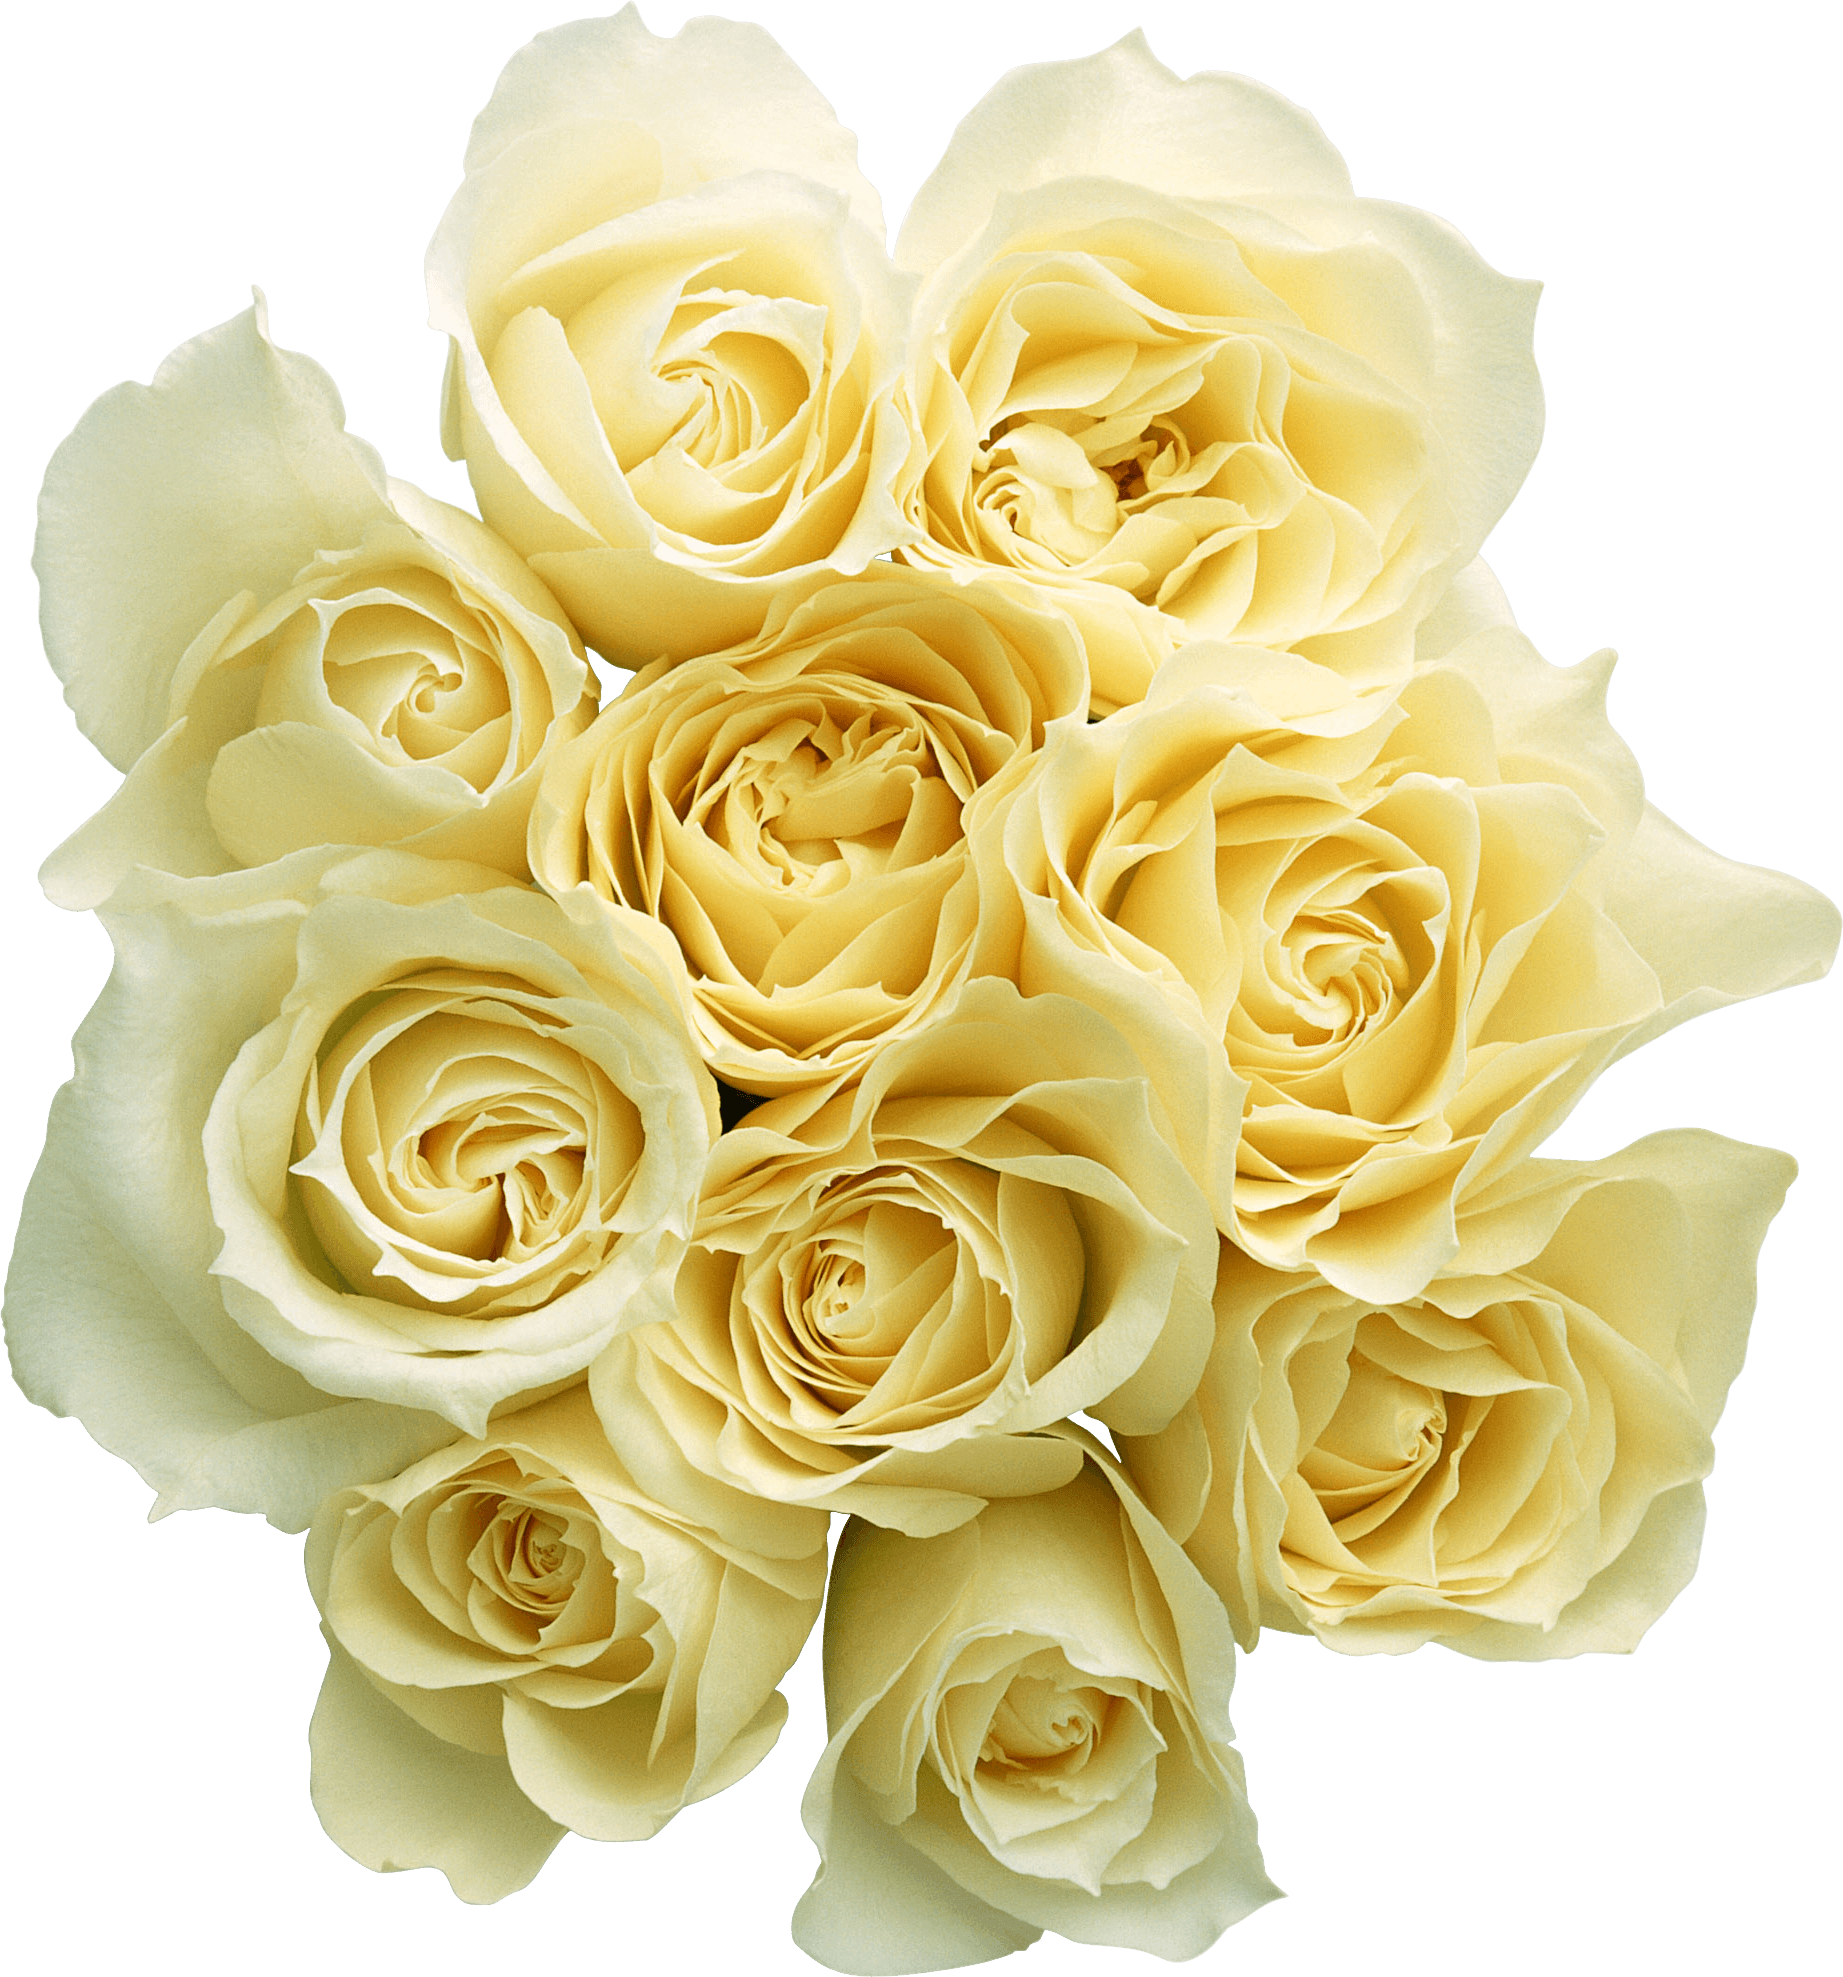 20 Bouquet Of White Roses Png For Free Download On Ya Webdesign